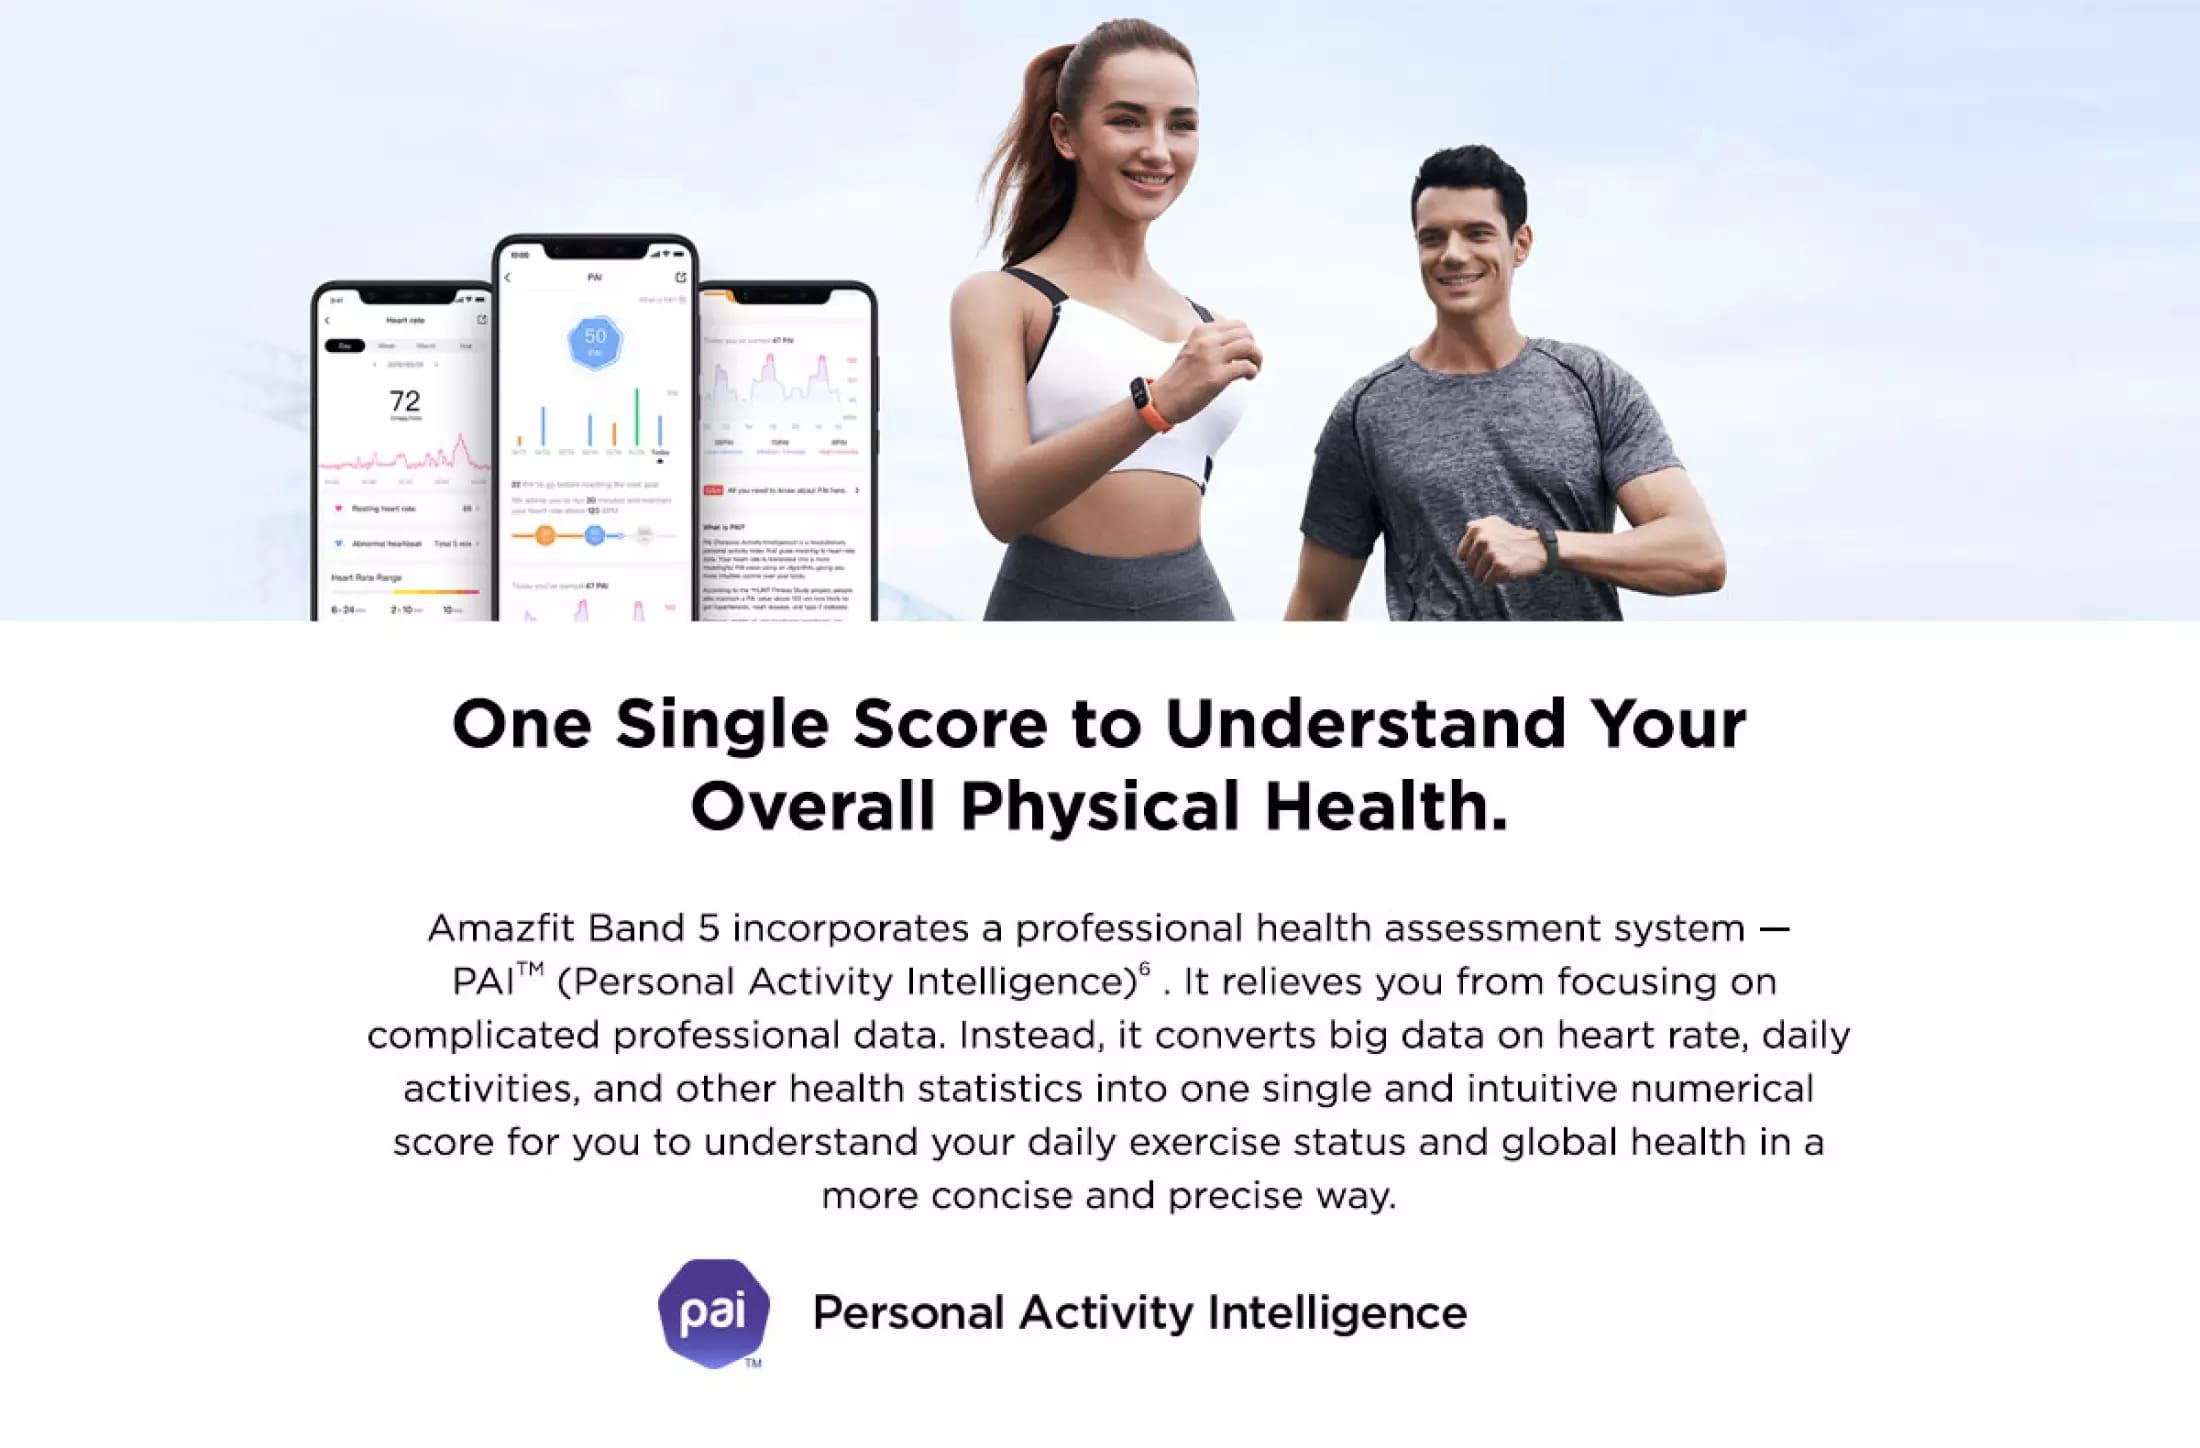 Amzafit Band 5 Show Your Physical Health Score